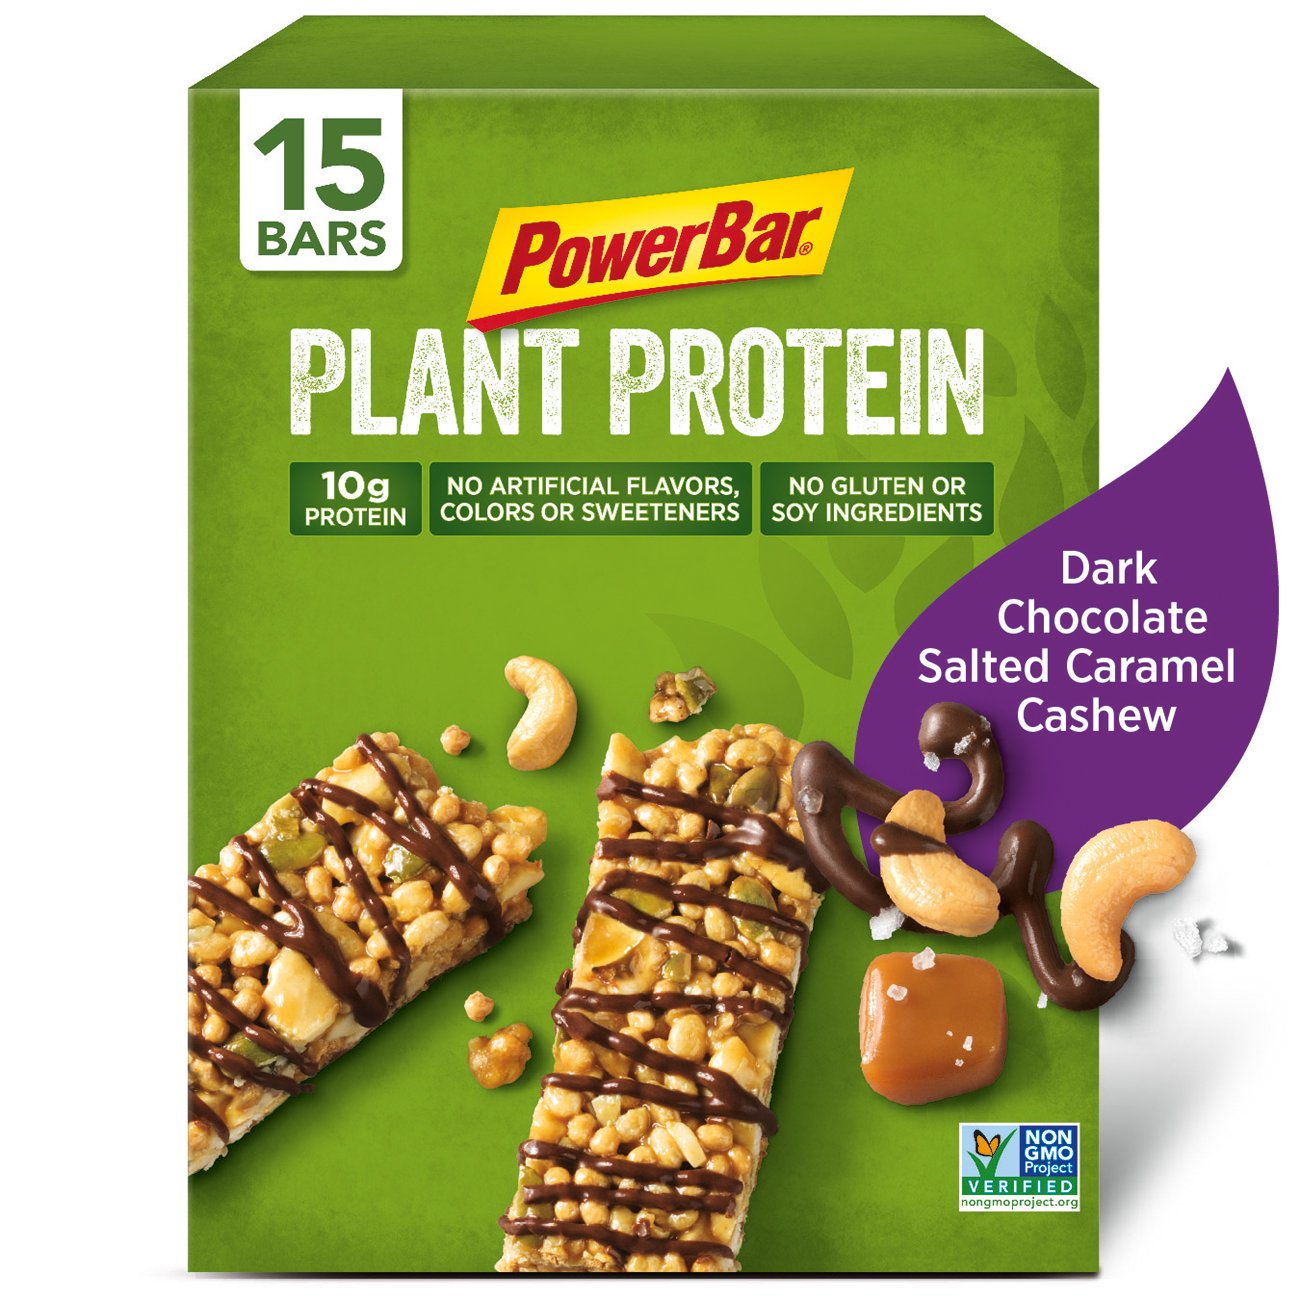 PowerBar Plant Protein Bar, Dark Chocolate Salted Caramel Cashew, 15 Count, Pack of 1 by Powerbar (Image #1)